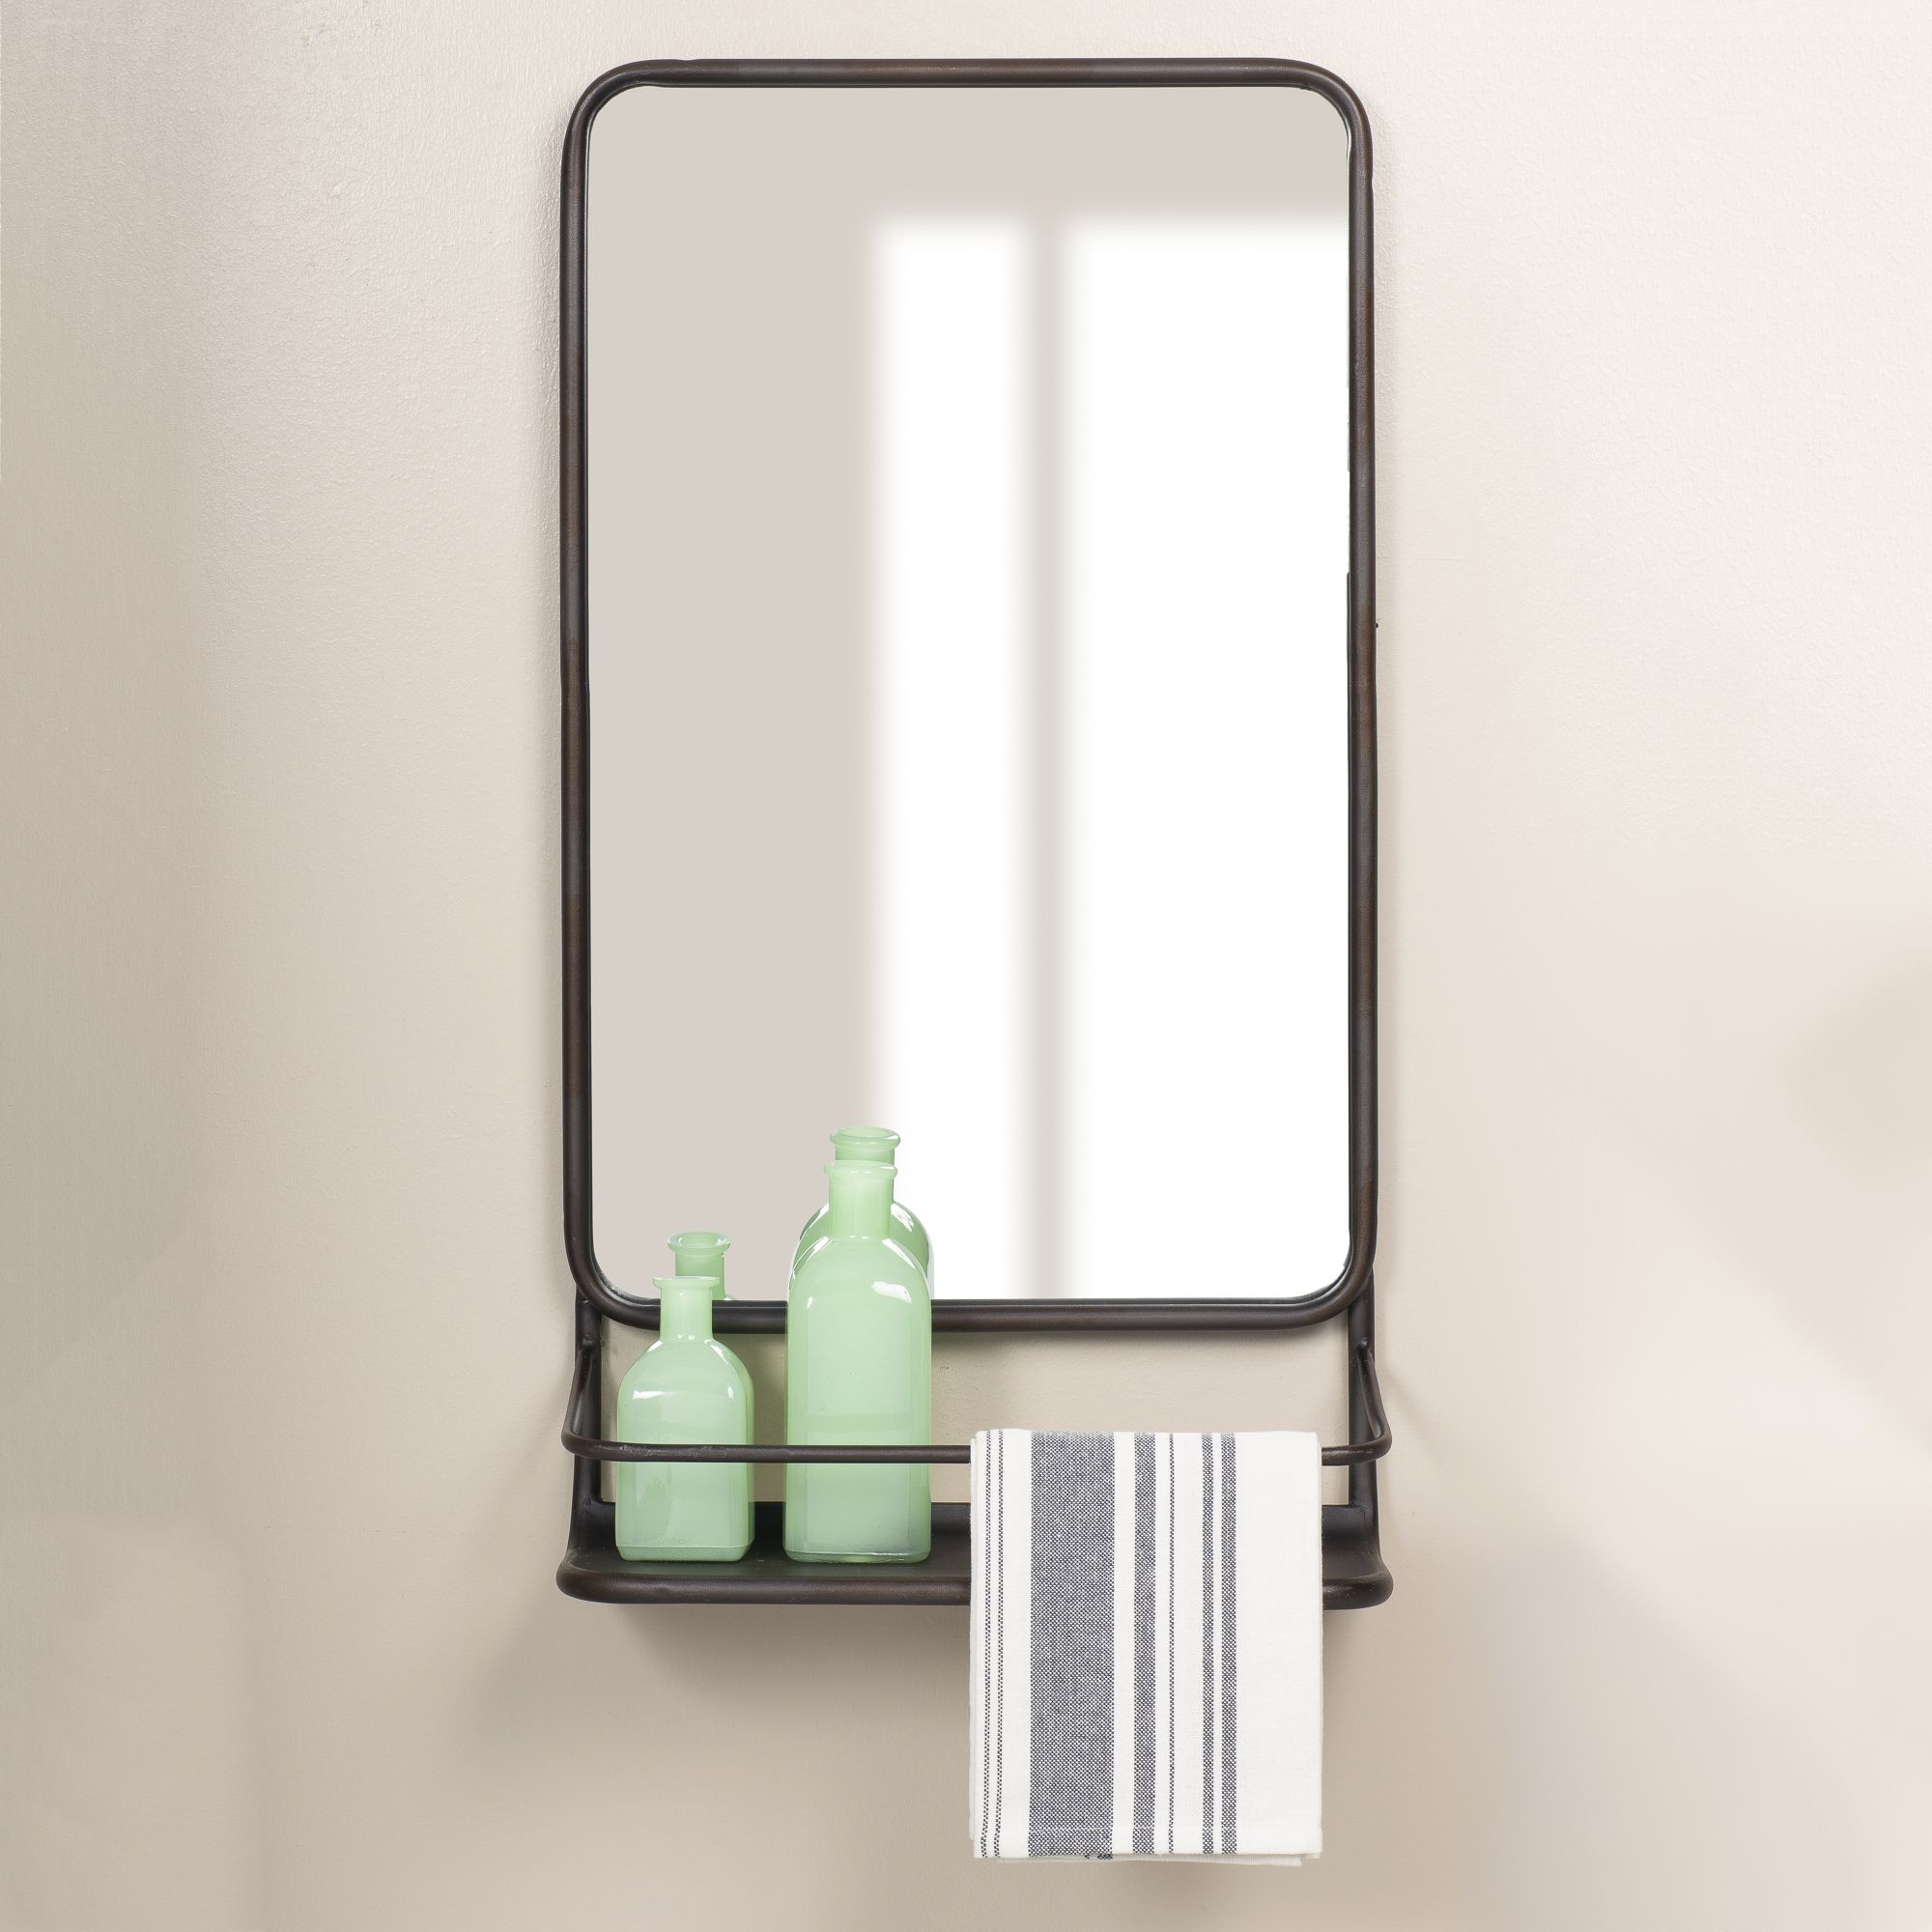 Home in 2020 Mirror with shelf, Wall mounted mirror